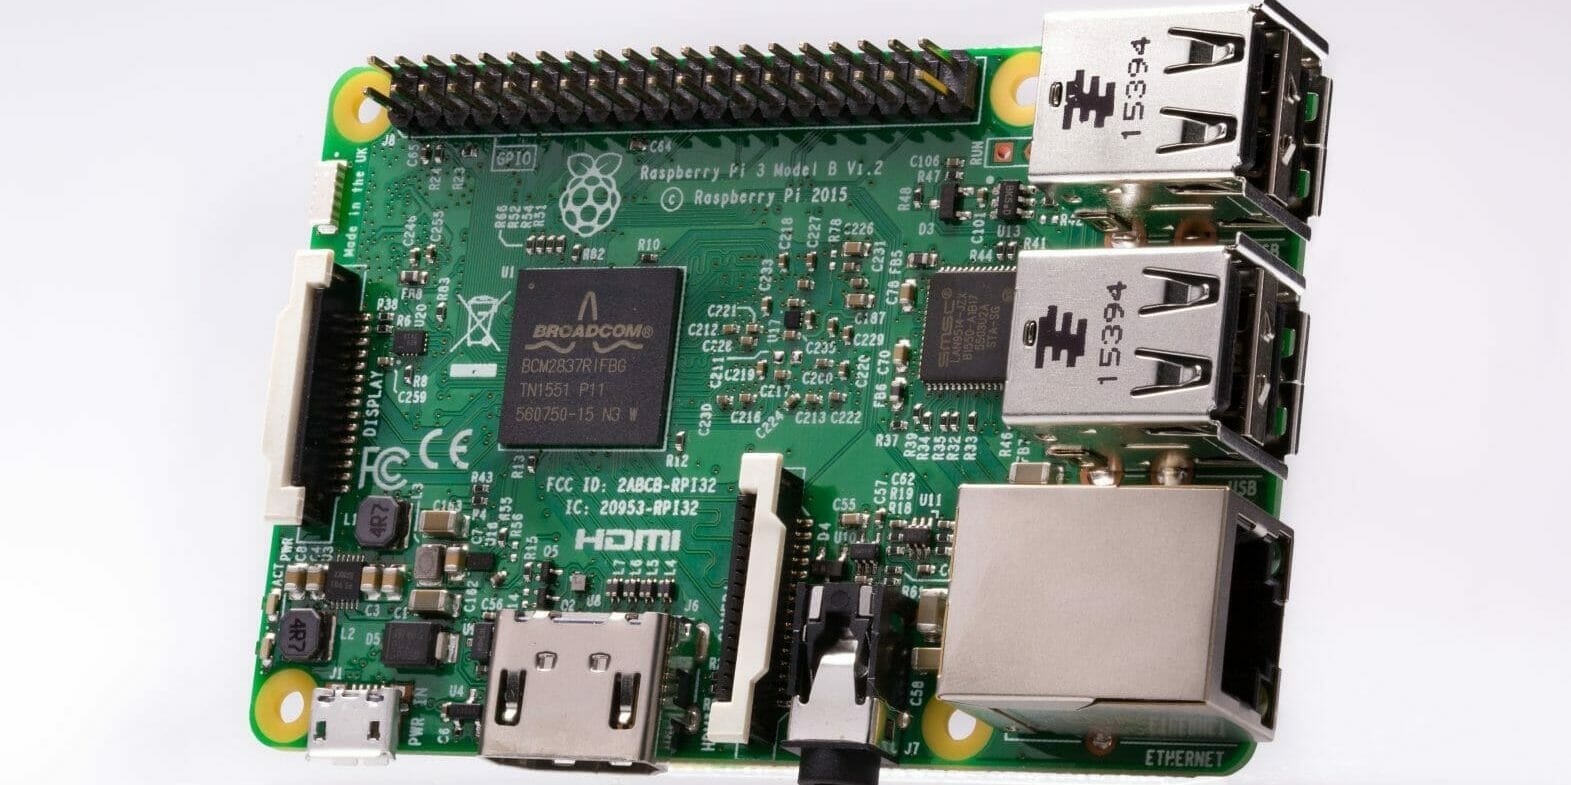 How to Watch Netflix on Raspberry Pi: A Step-By-Step Guide